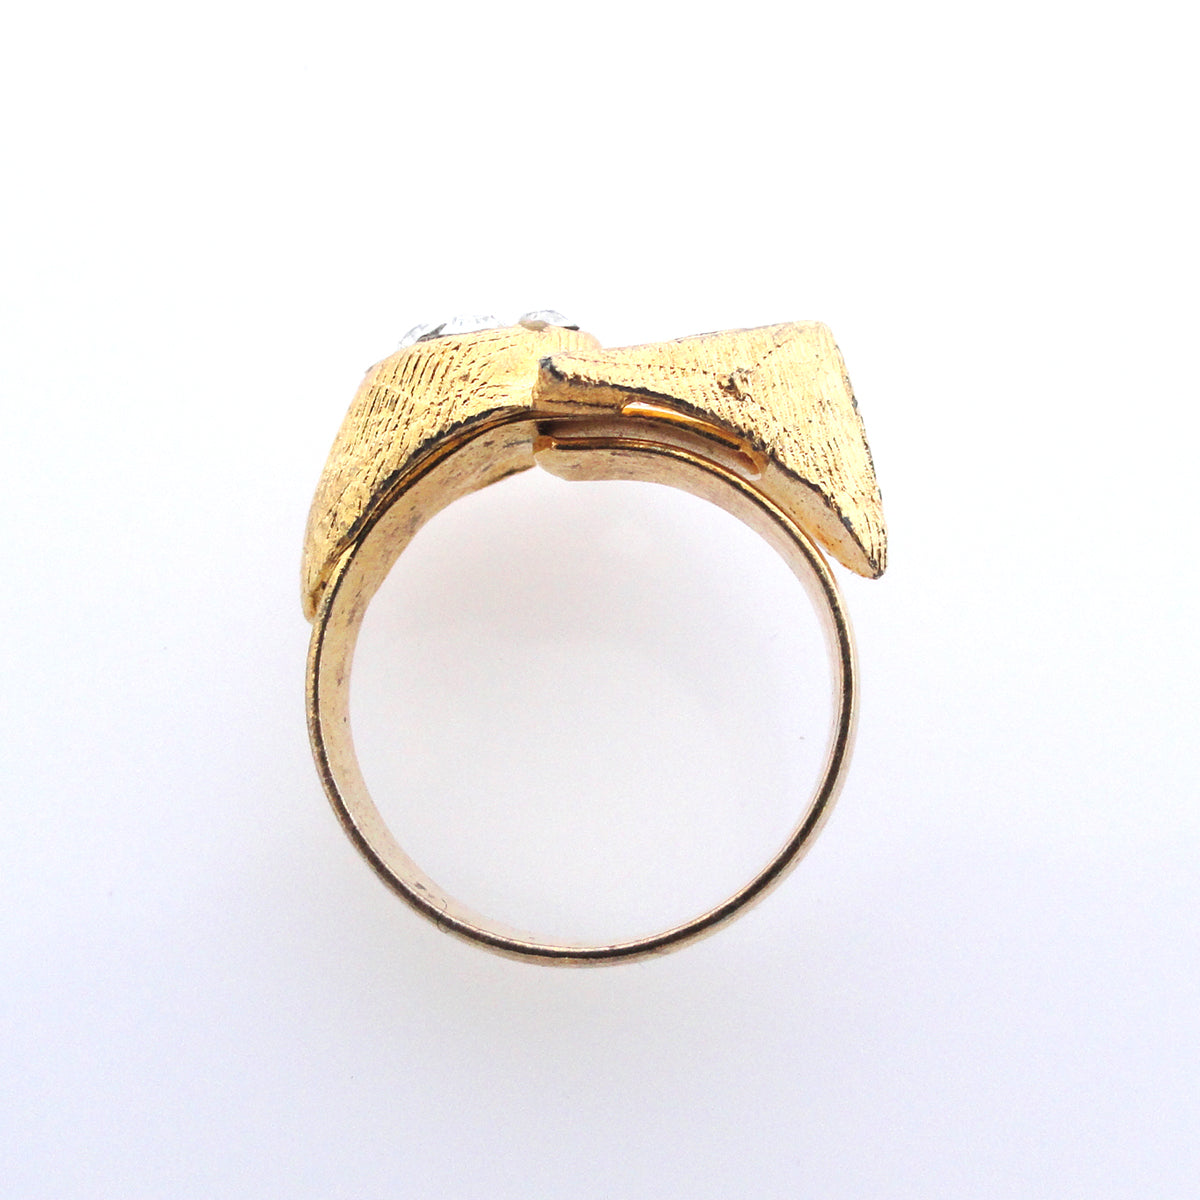 Vintage gold triangle and rhinestone ring by Jenny Dayco side view